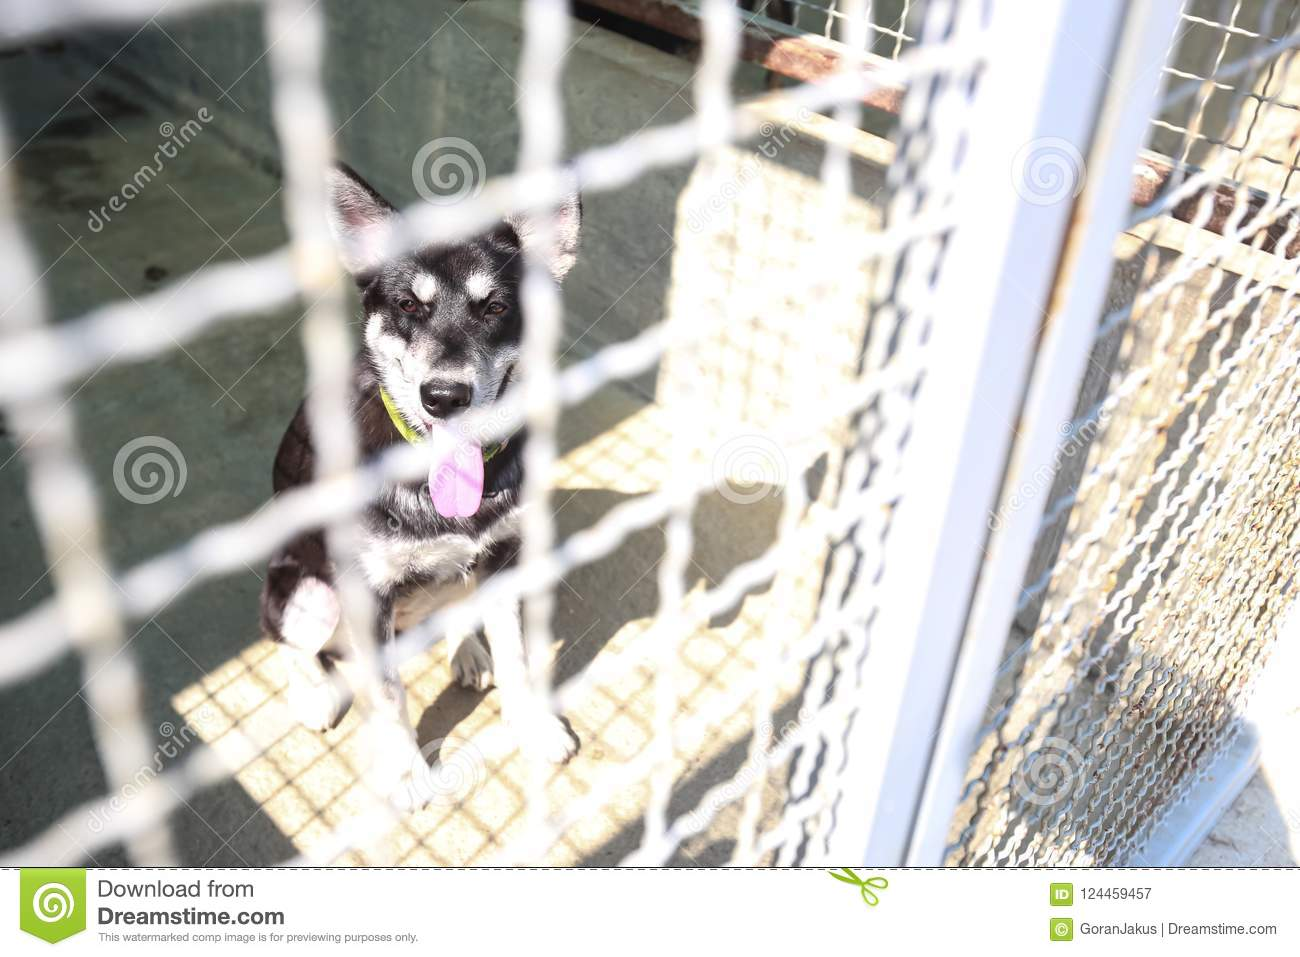 how to drop off a dog at the animal shelter